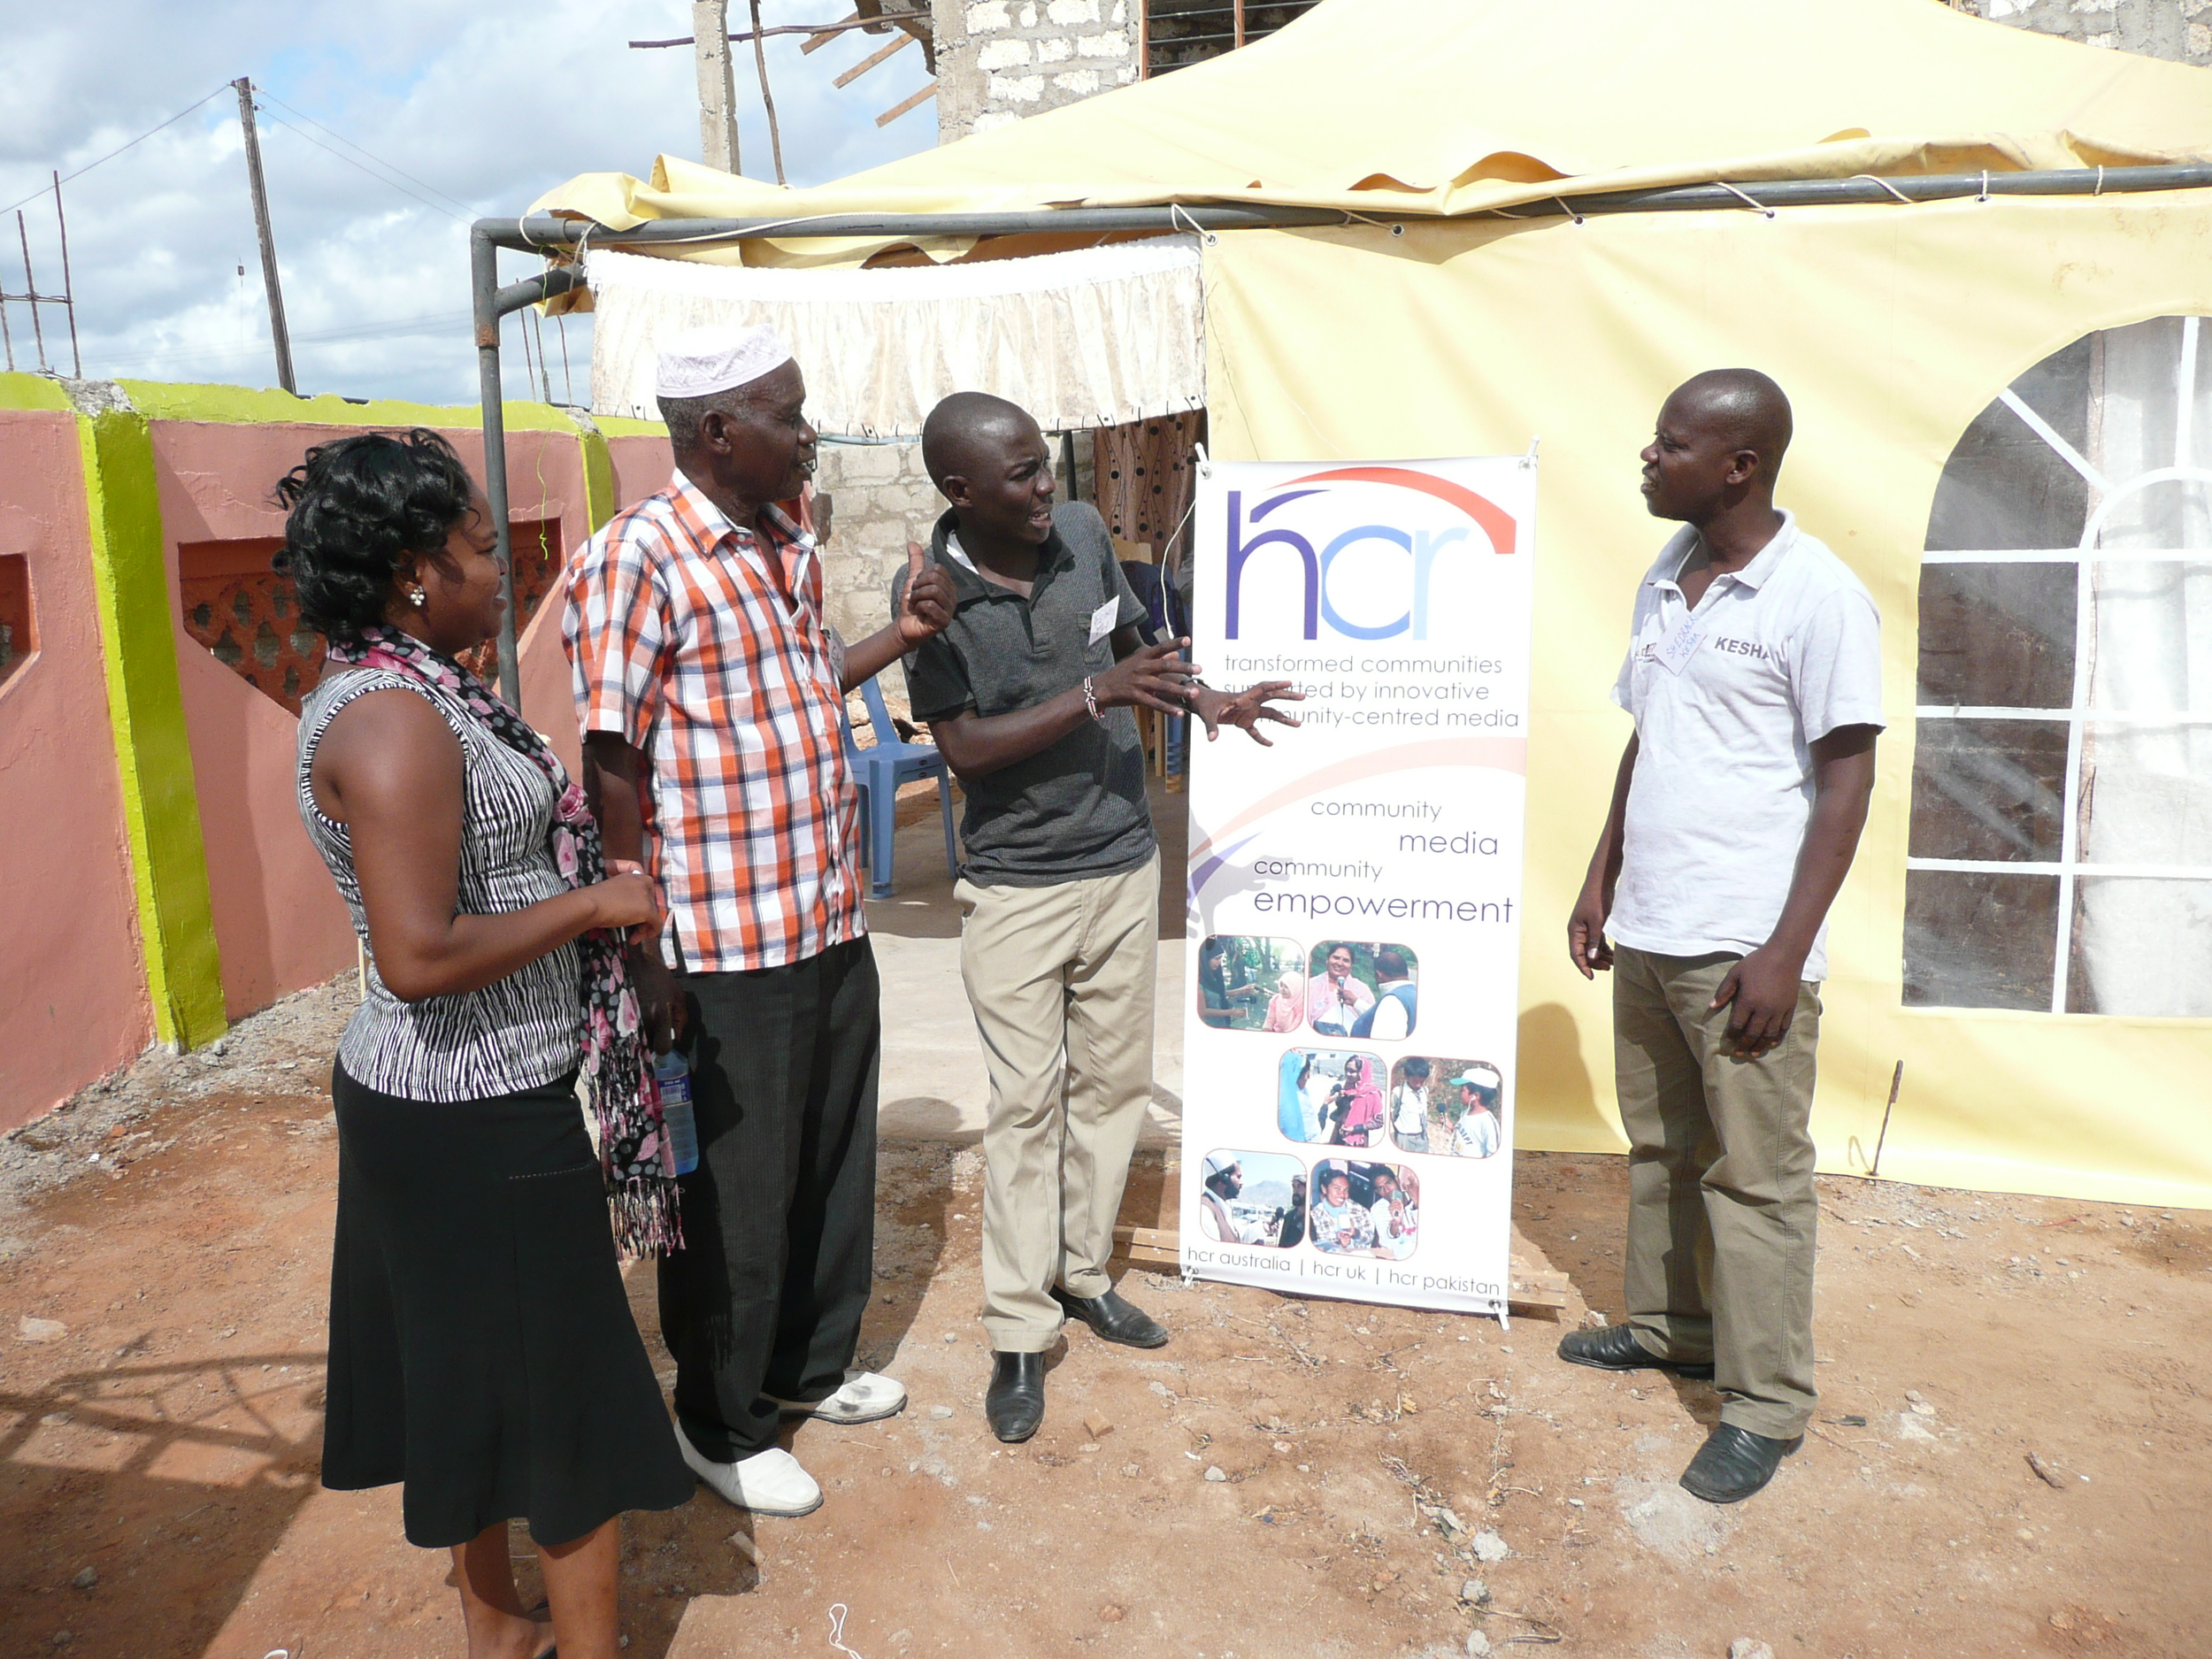 Community members from Tana River County in Kenya are eager to be involved in a community-centred media strategy for peace-building and addressing social issues.